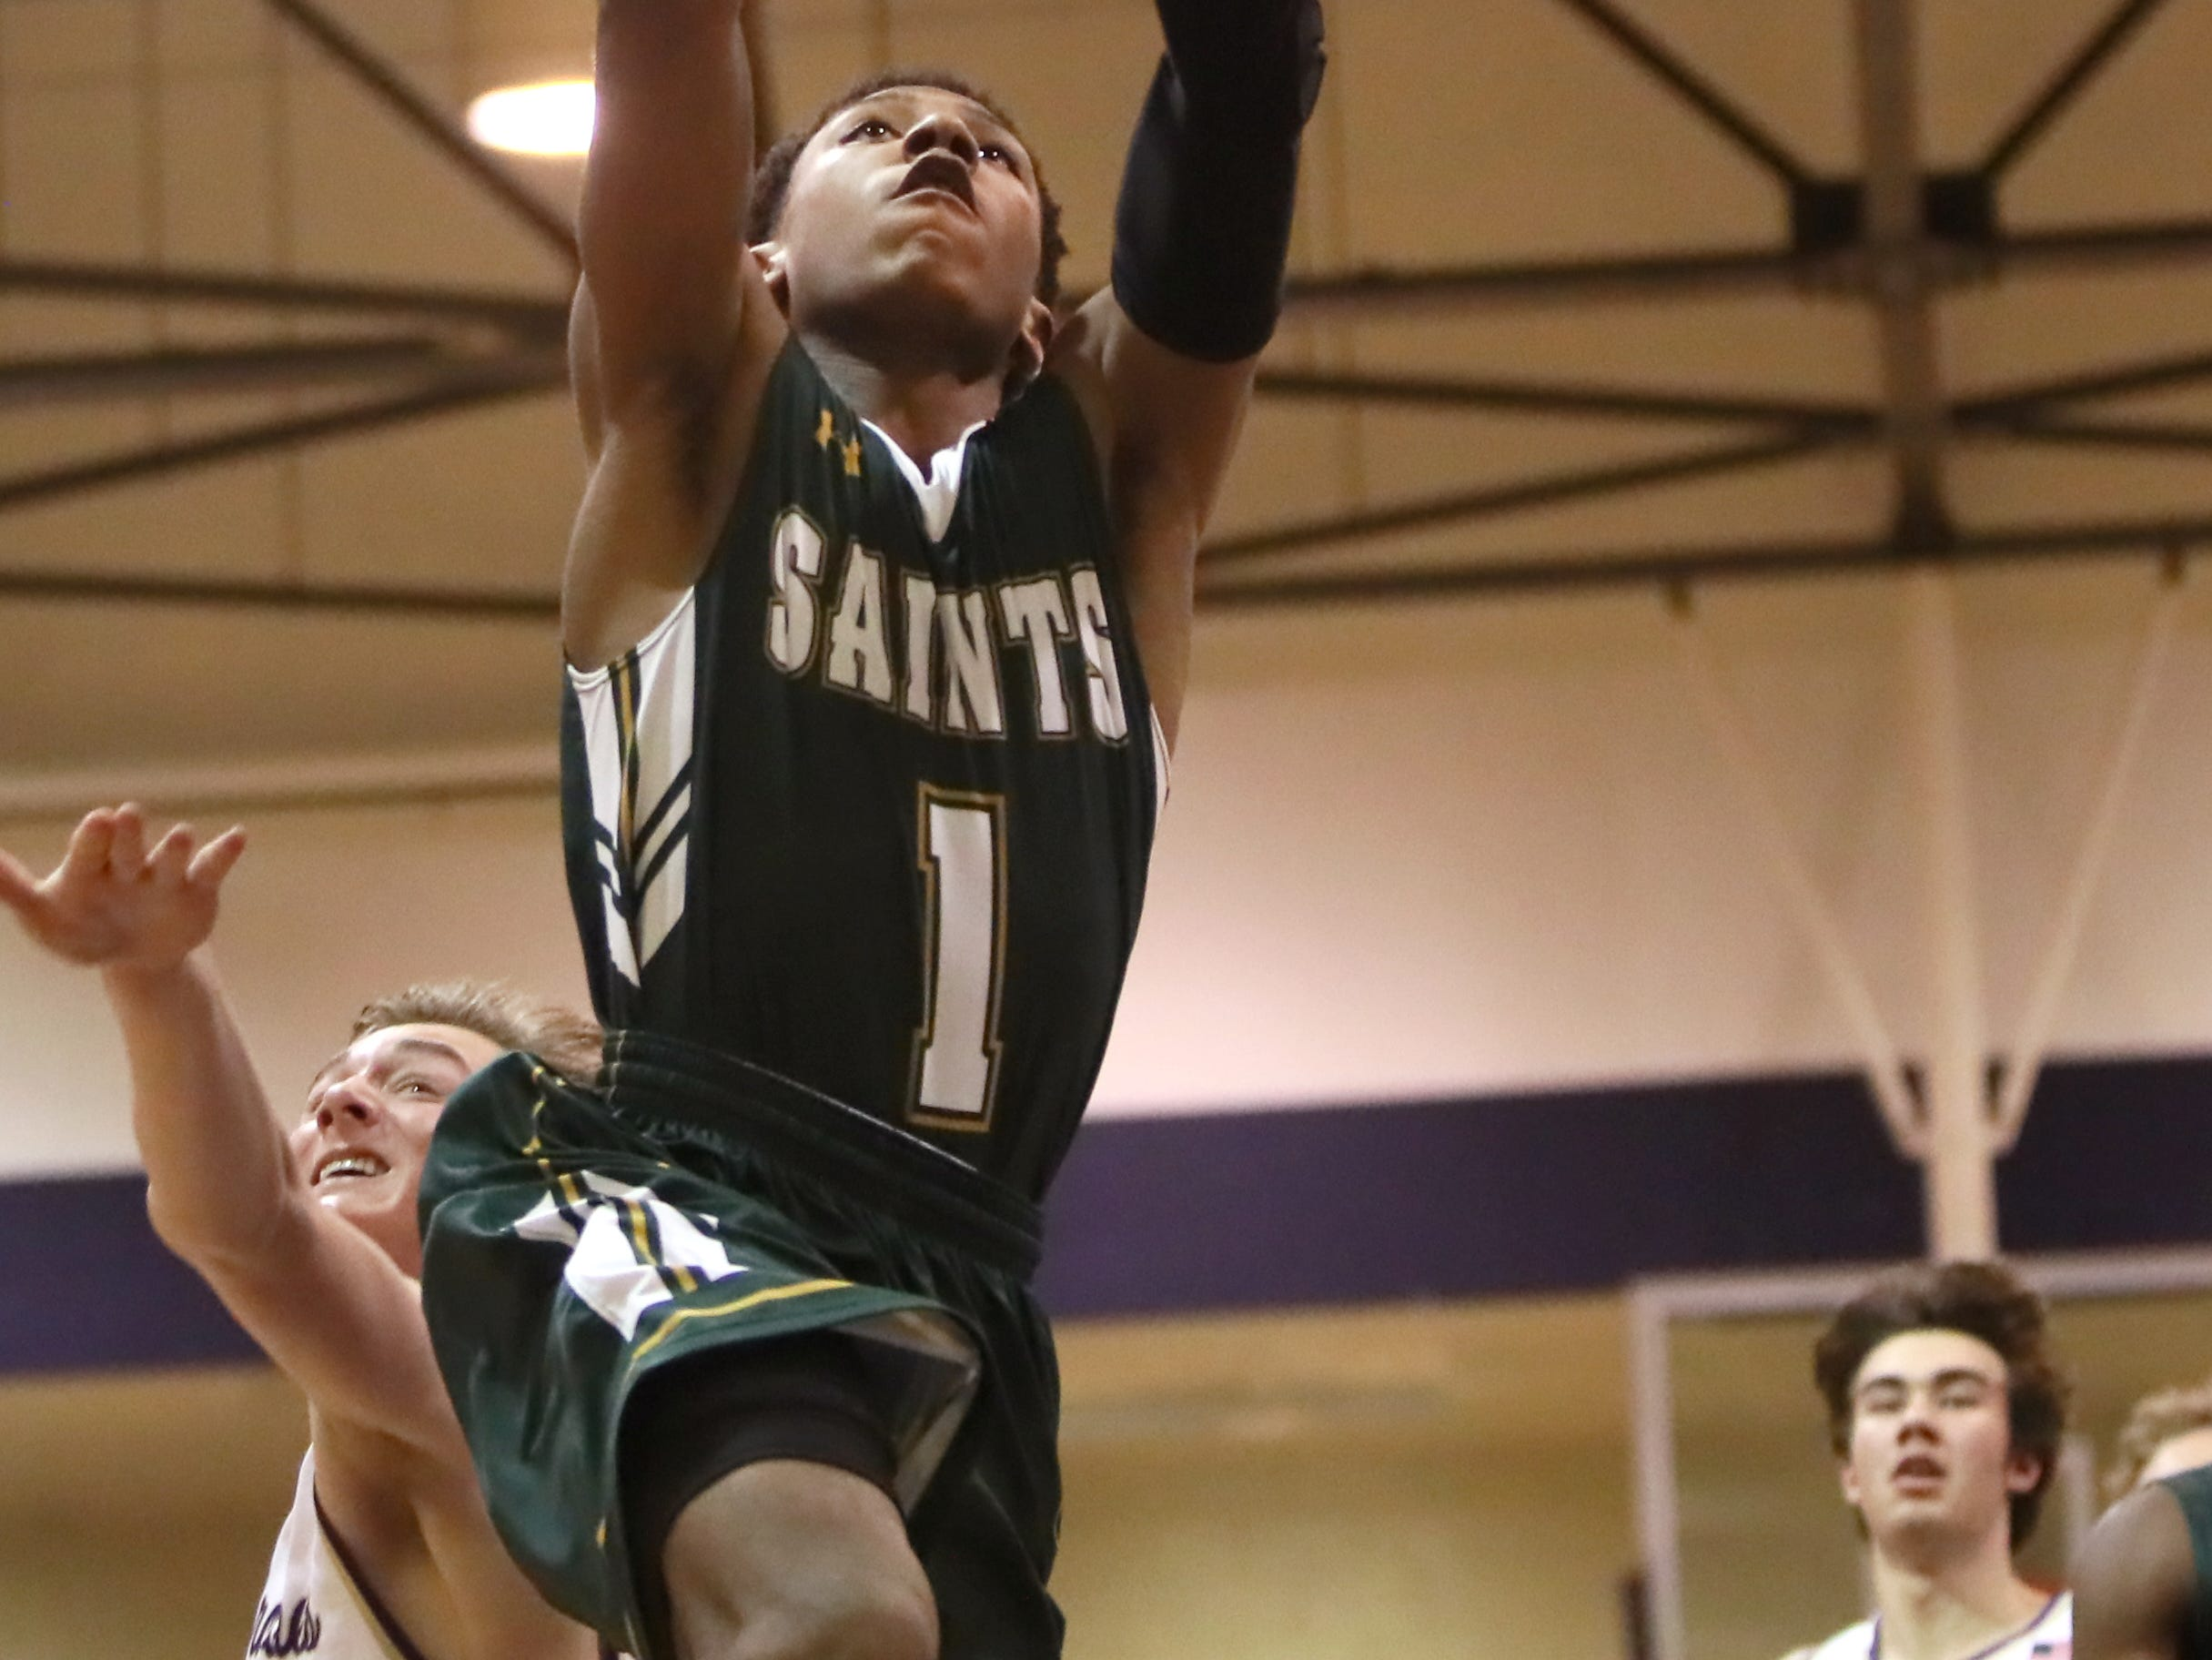 Briarcrest's Kennedy Chandler dunks the ball during their game at Christian Brothers High School on Friday, Jan. 11, 2019.